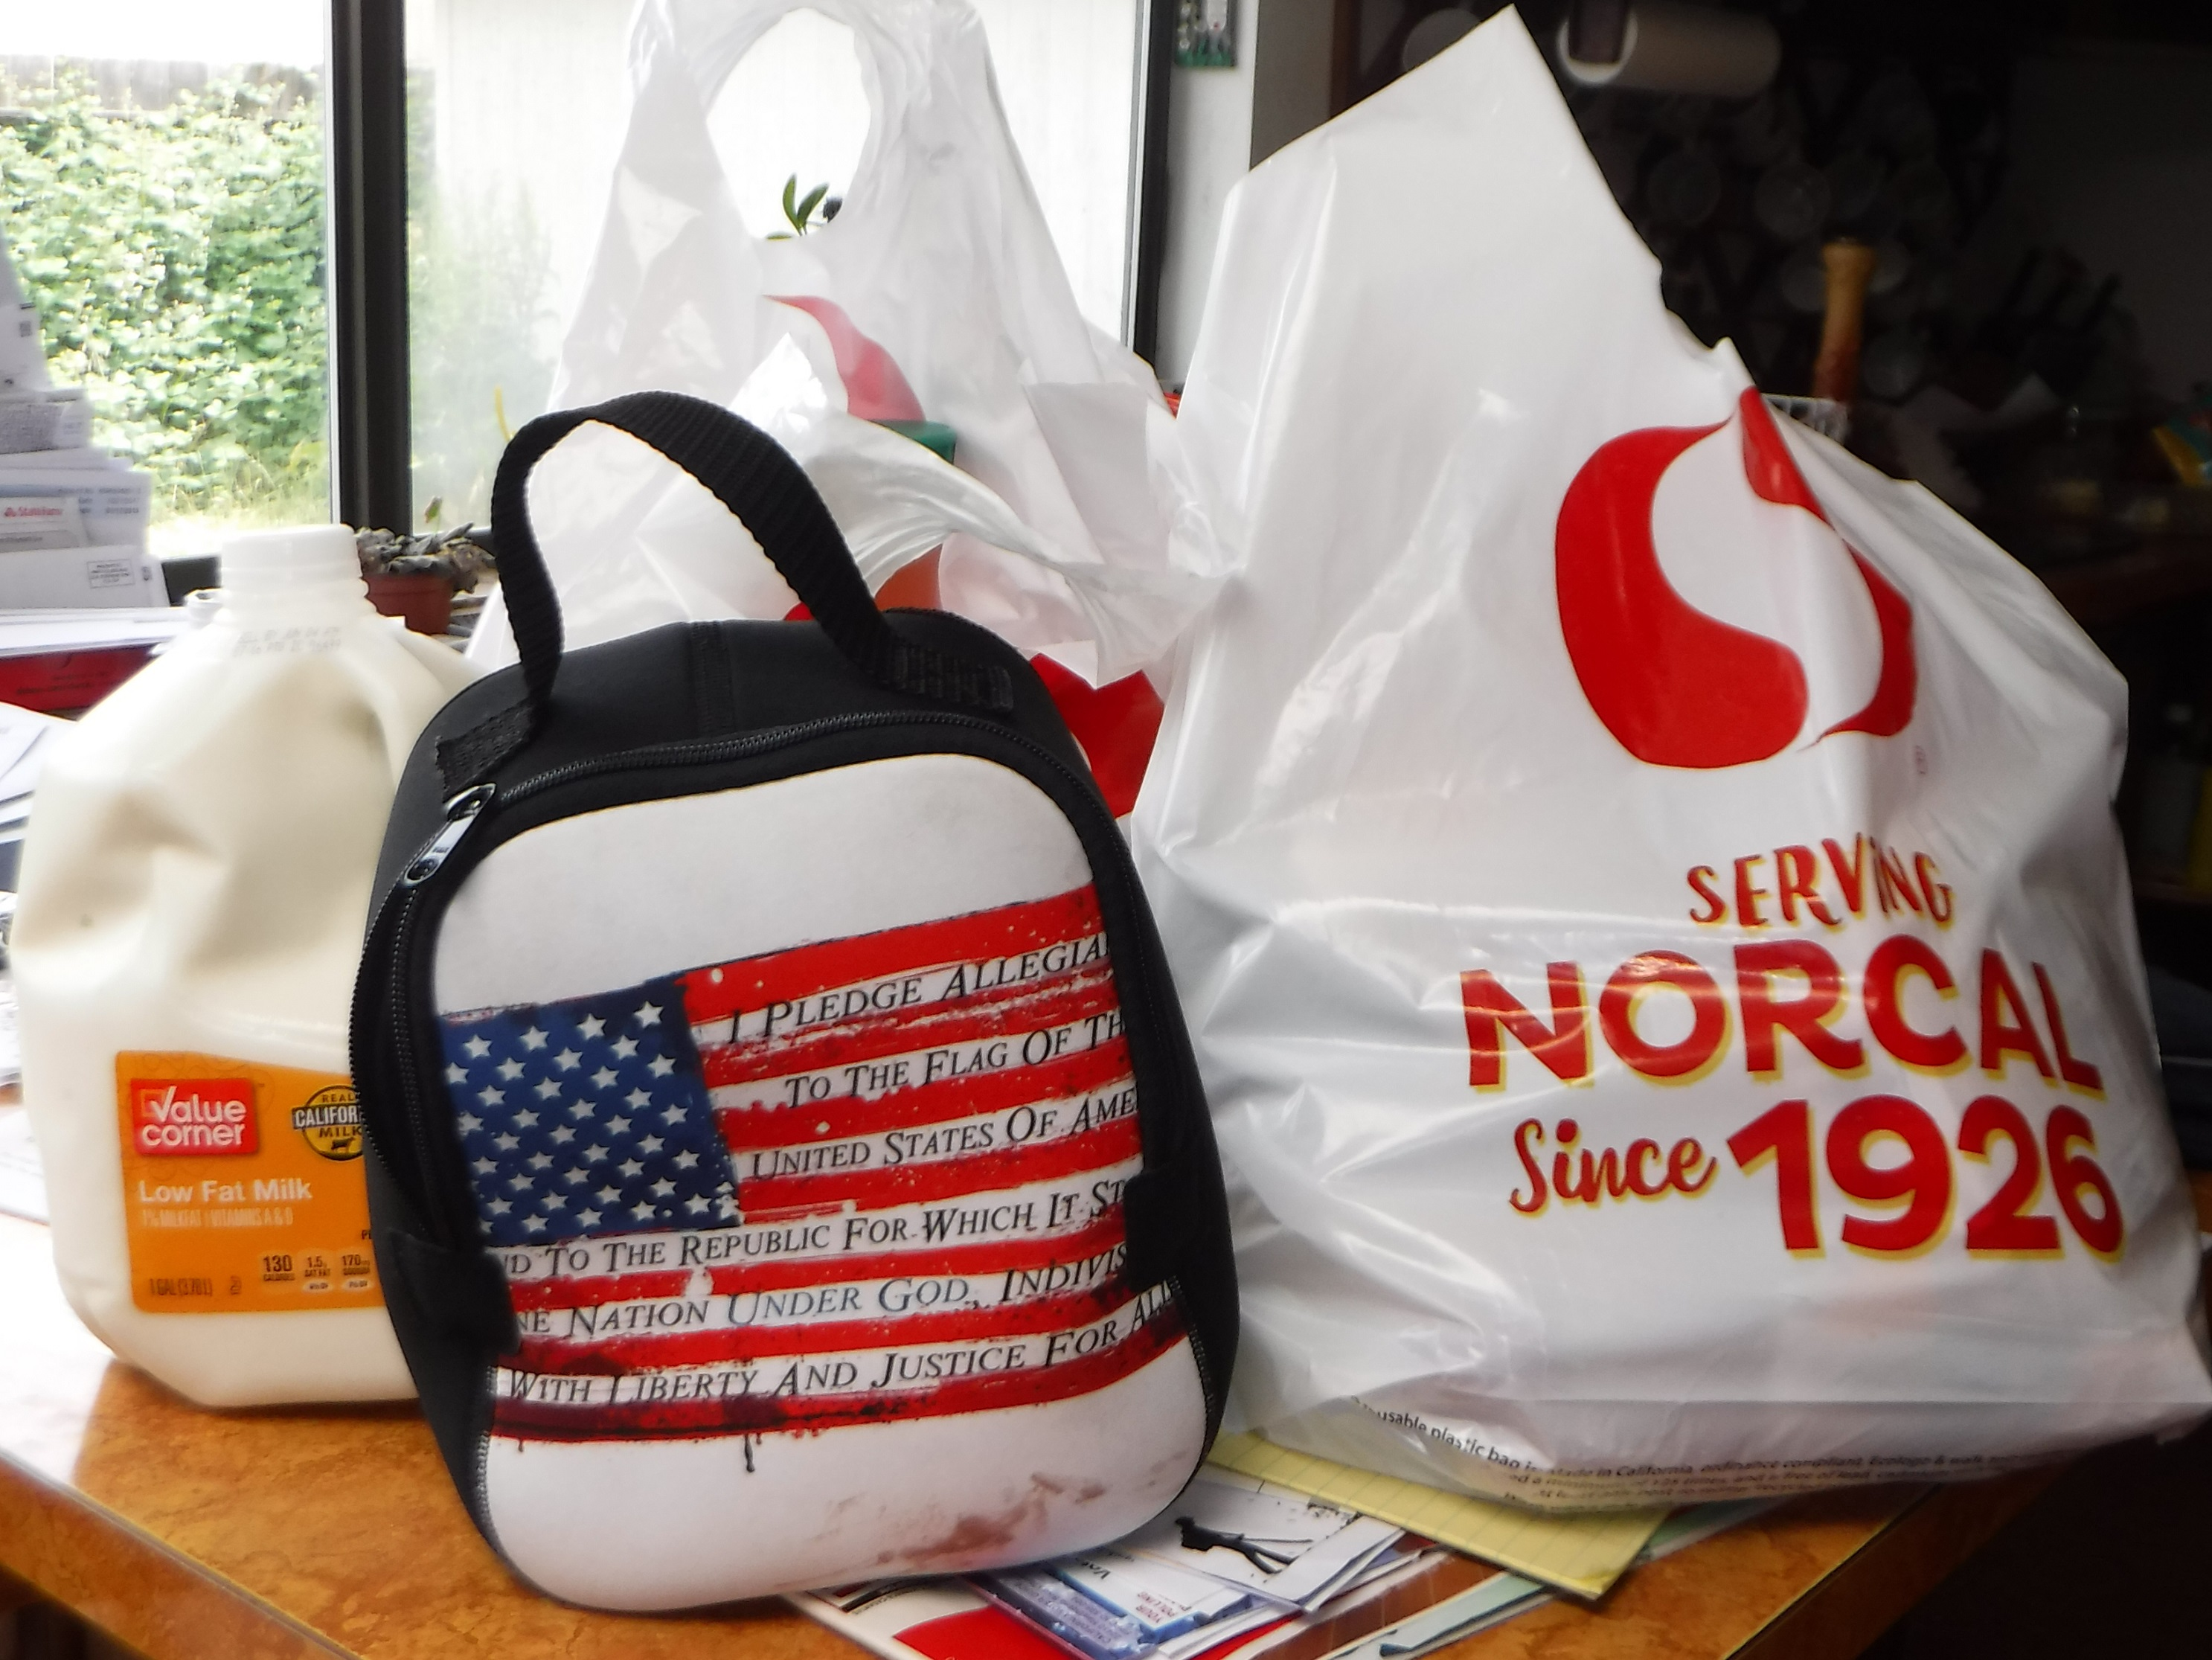 Photo I took of my groceries and lunch bag when I got home